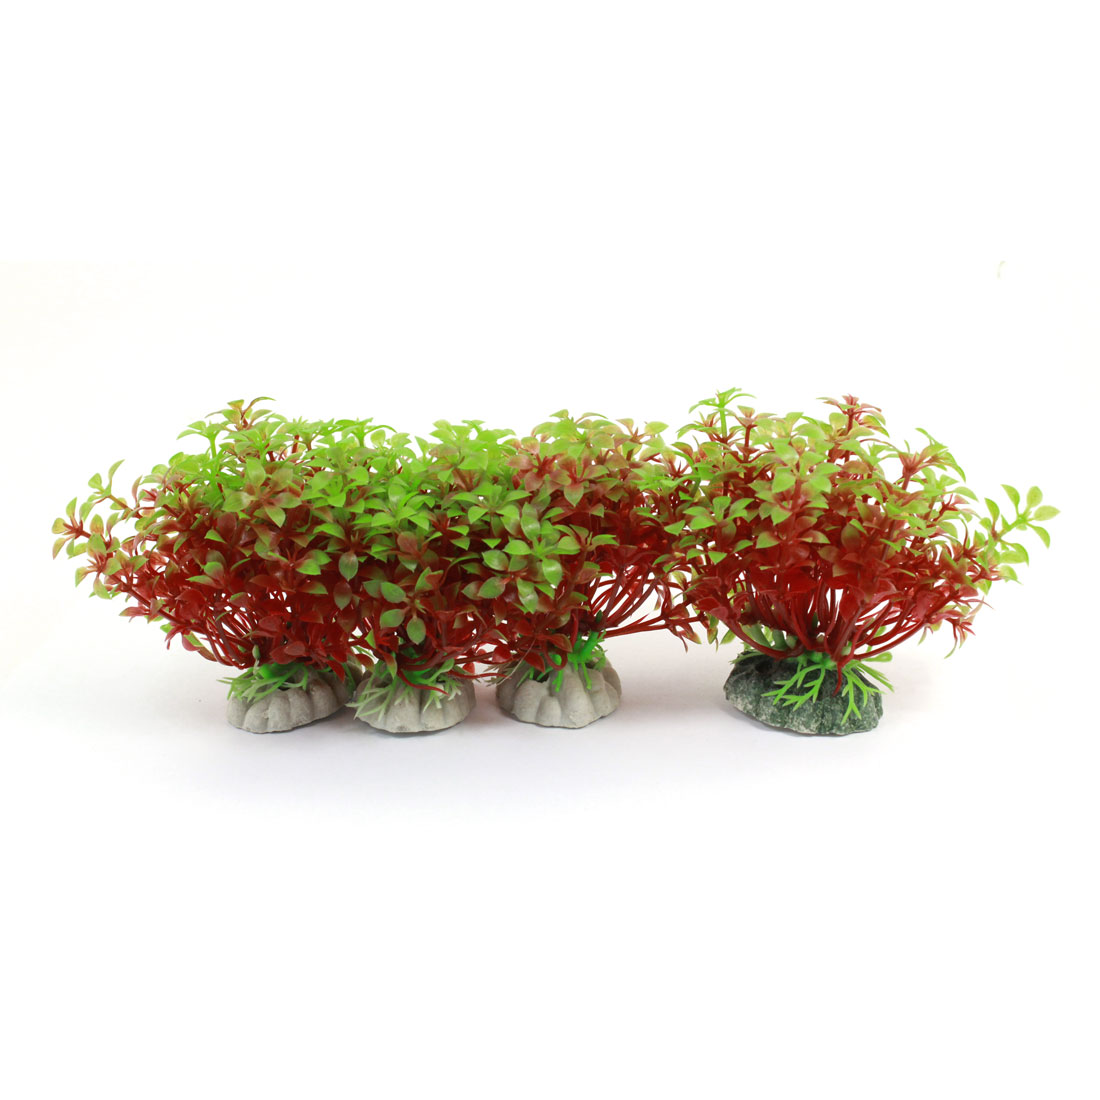 "Fish Tank Aquarium Ornament 3.5"" Height Simulation Underwater Artificial Emulational Water Plant Grass Detail Red Green 4PCS"